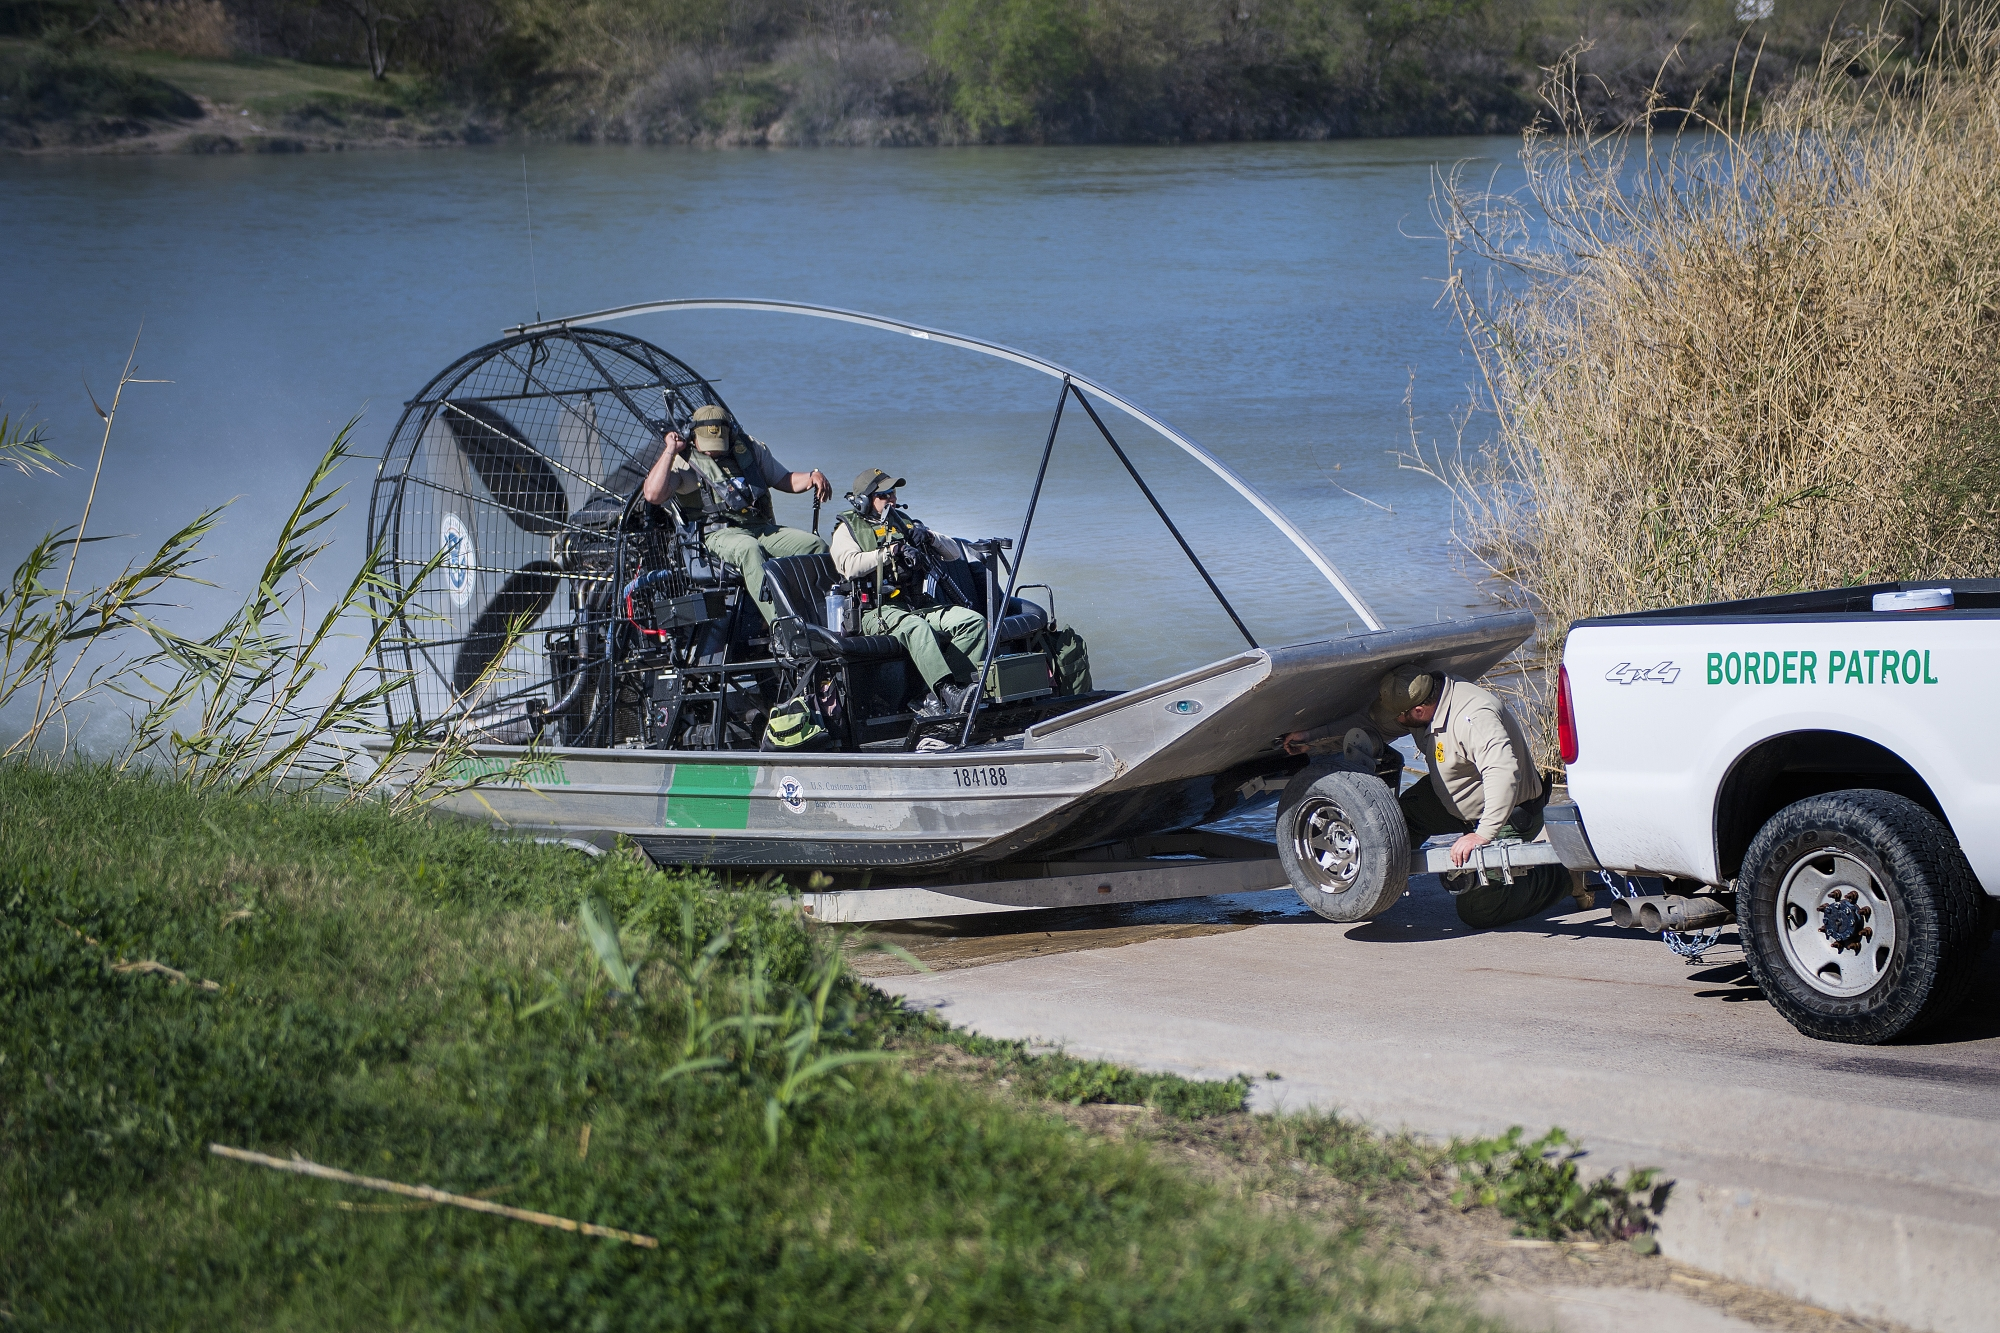 US Border Patrol pull outs of the Rio Grande river on a fan boat on the US/Mexico border in Eagle Pass, Texas, on February 21, 2017